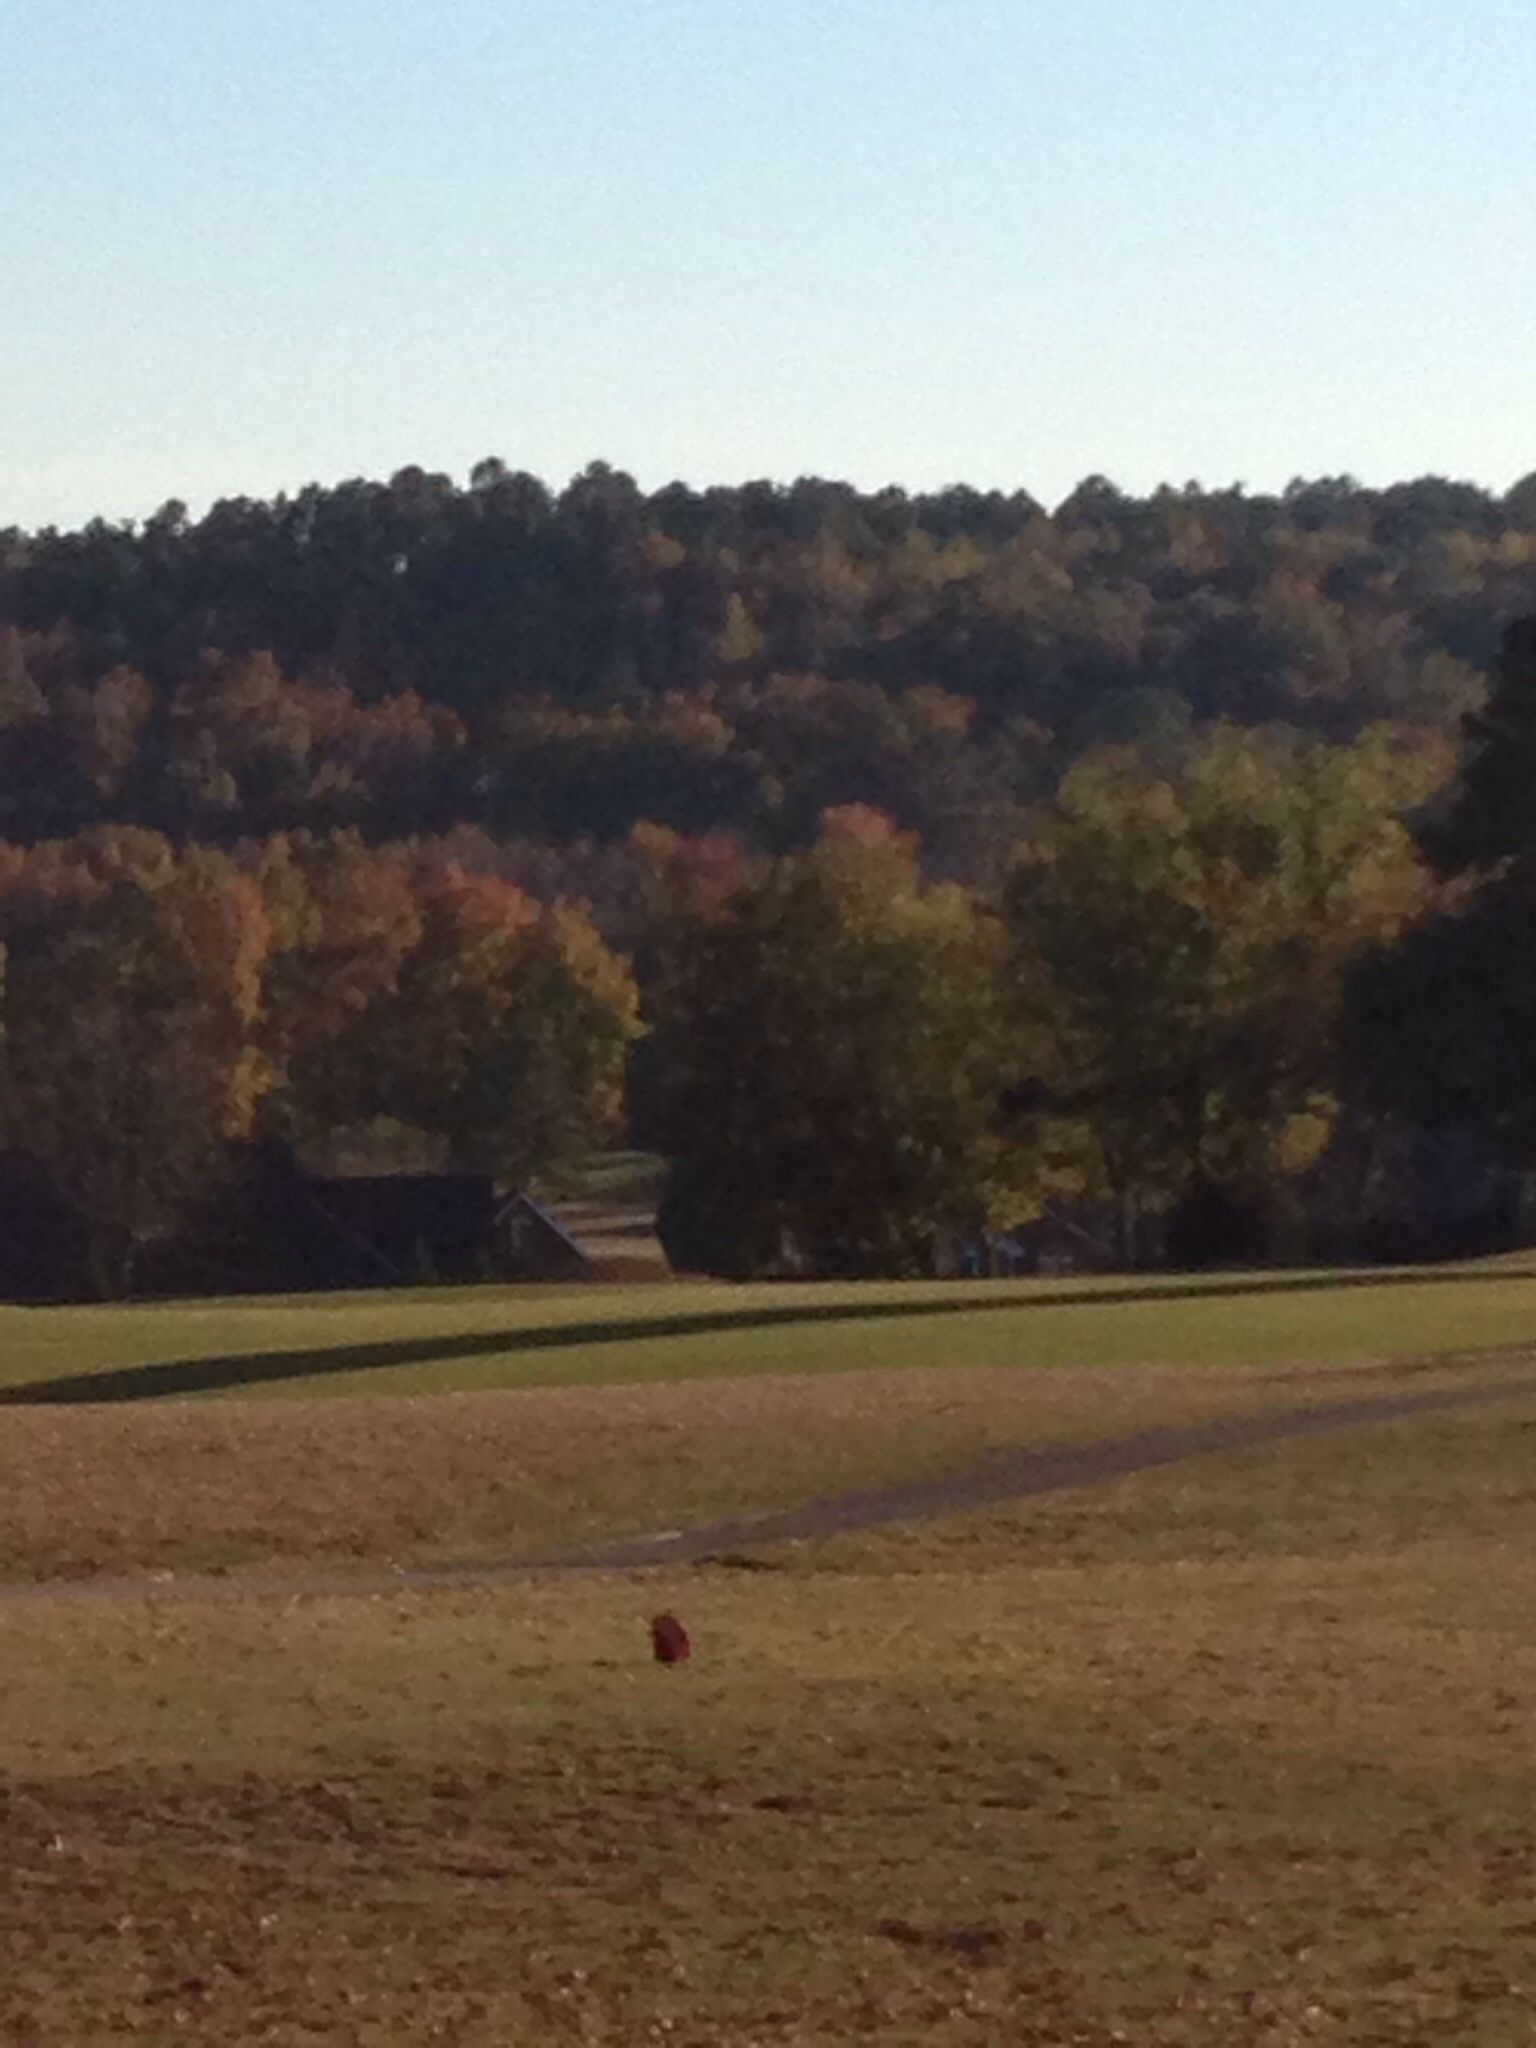 8 Tee Box At Beech Creek Golf Course Magnificent View Country Roads Golf Courses Views